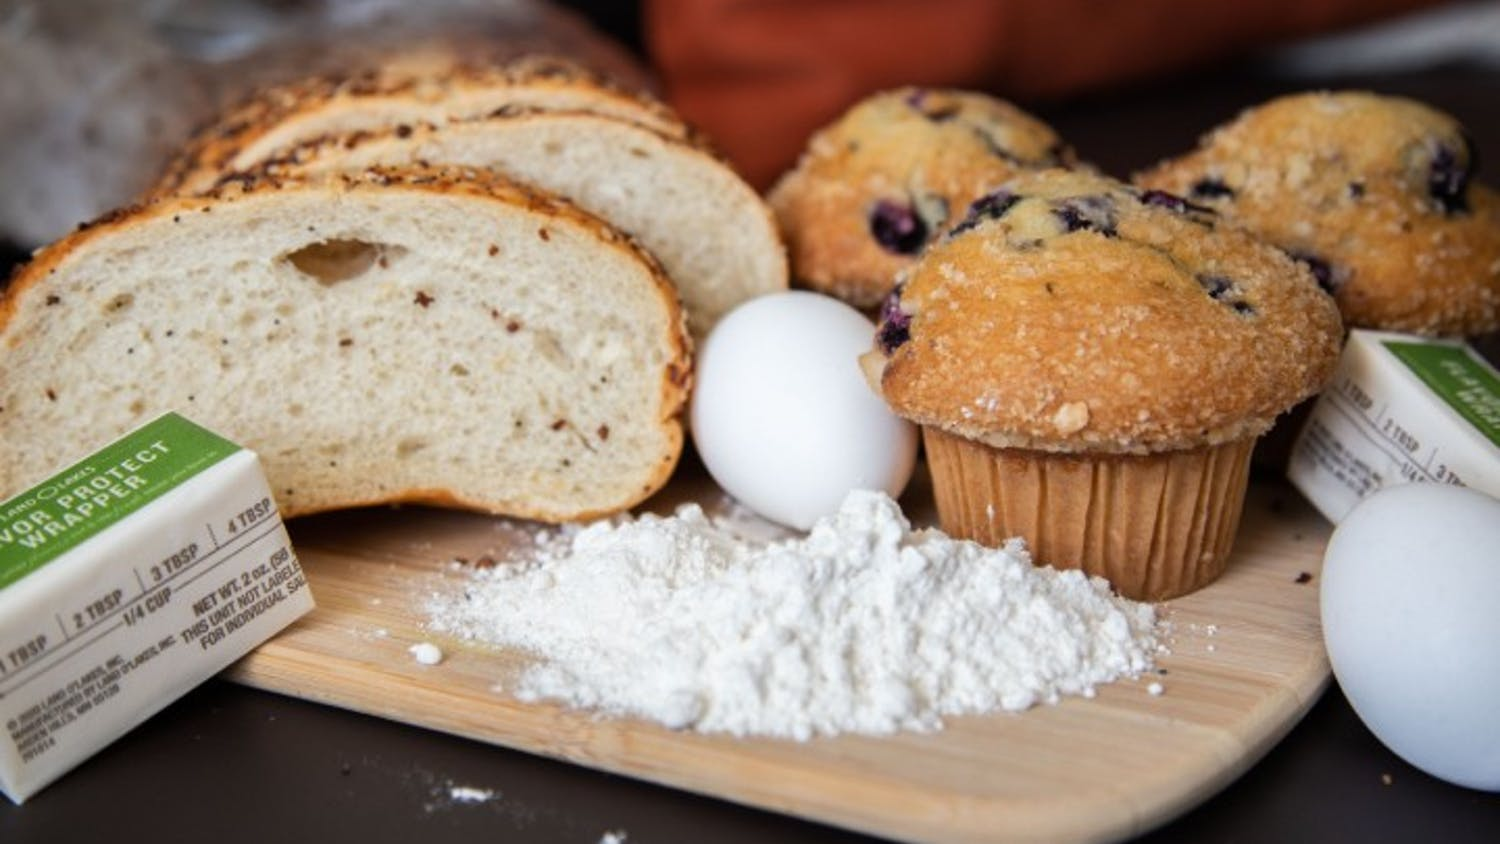 Baking ingredients are laid out across a table.